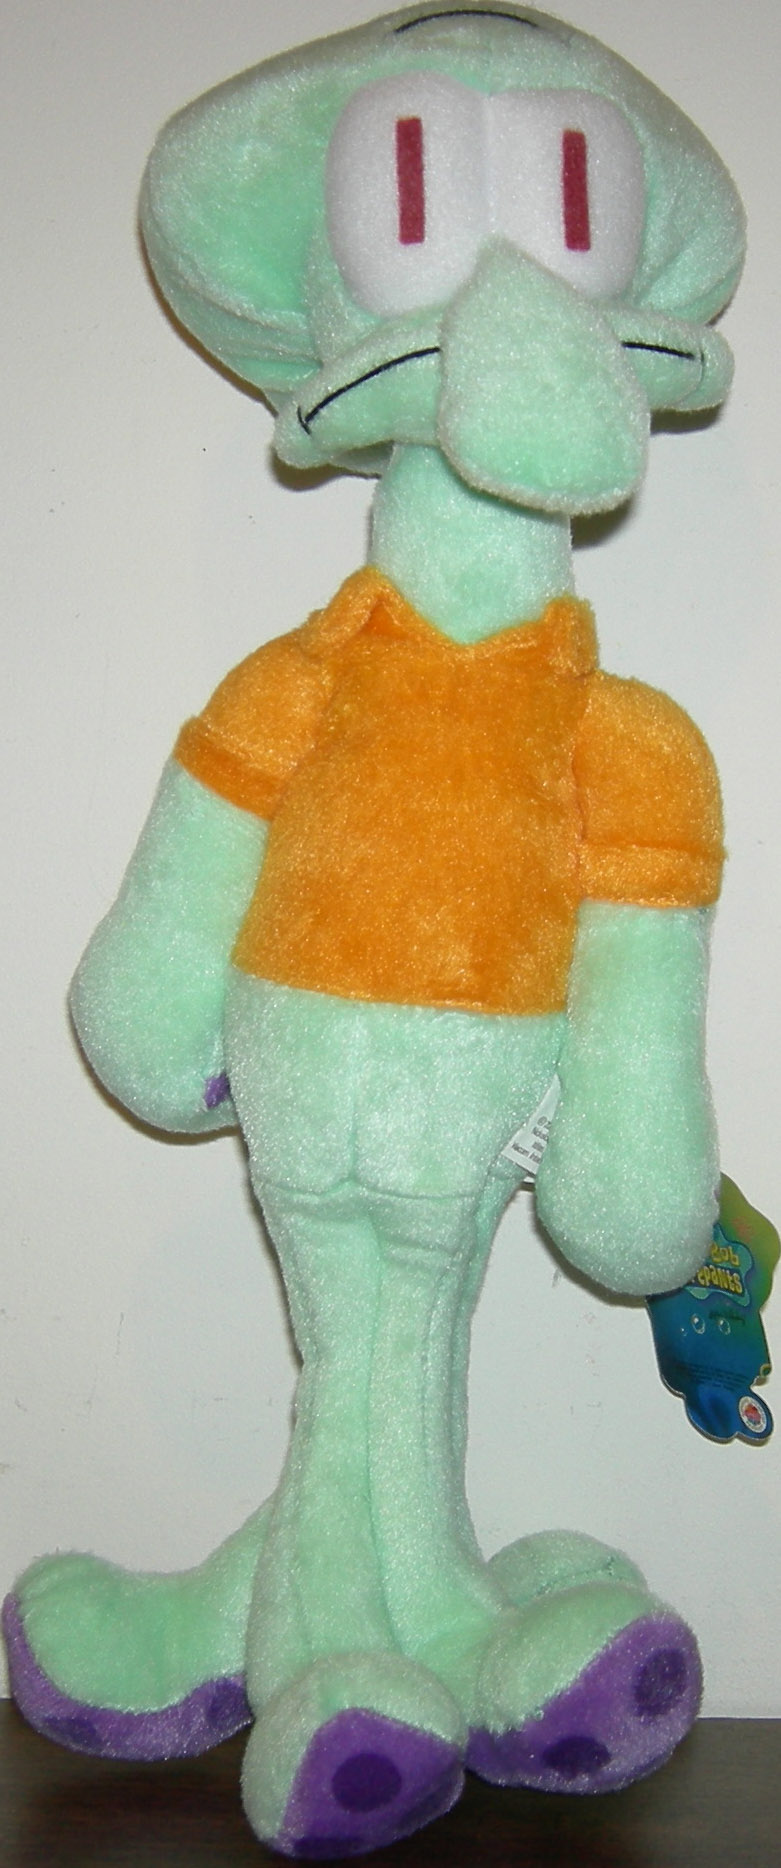 14 inch squidward tentacles plush